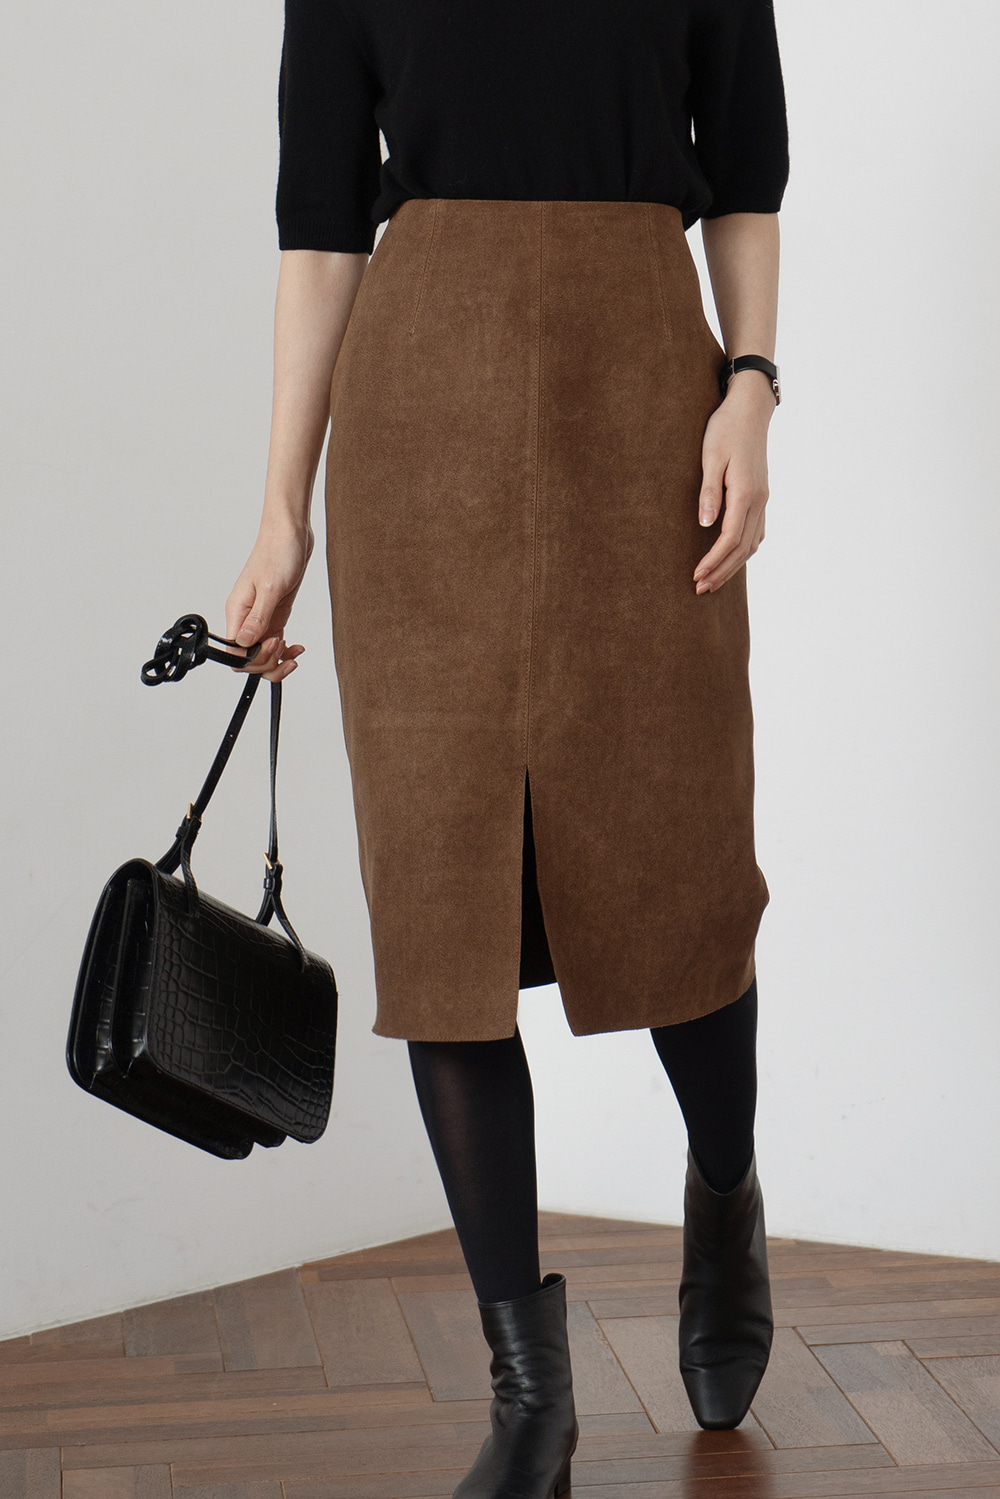 4090_Slit Suede Skirt [ 5일 정도 지연 ]